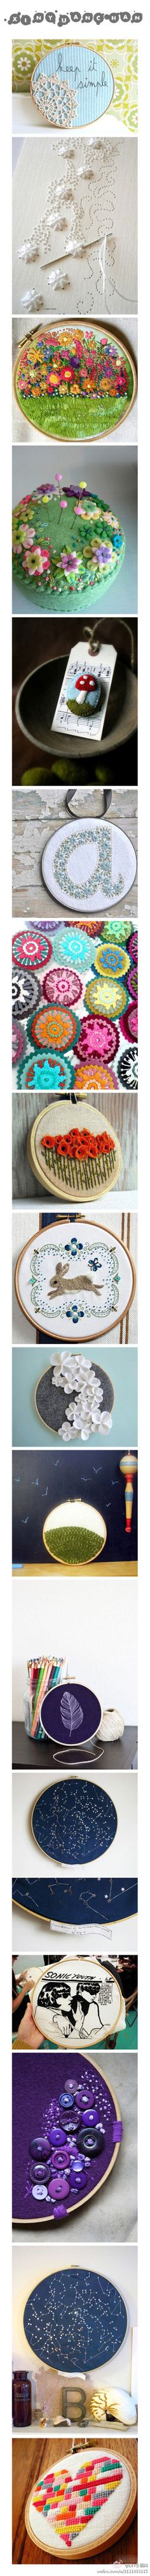 embroidery examples and uses!